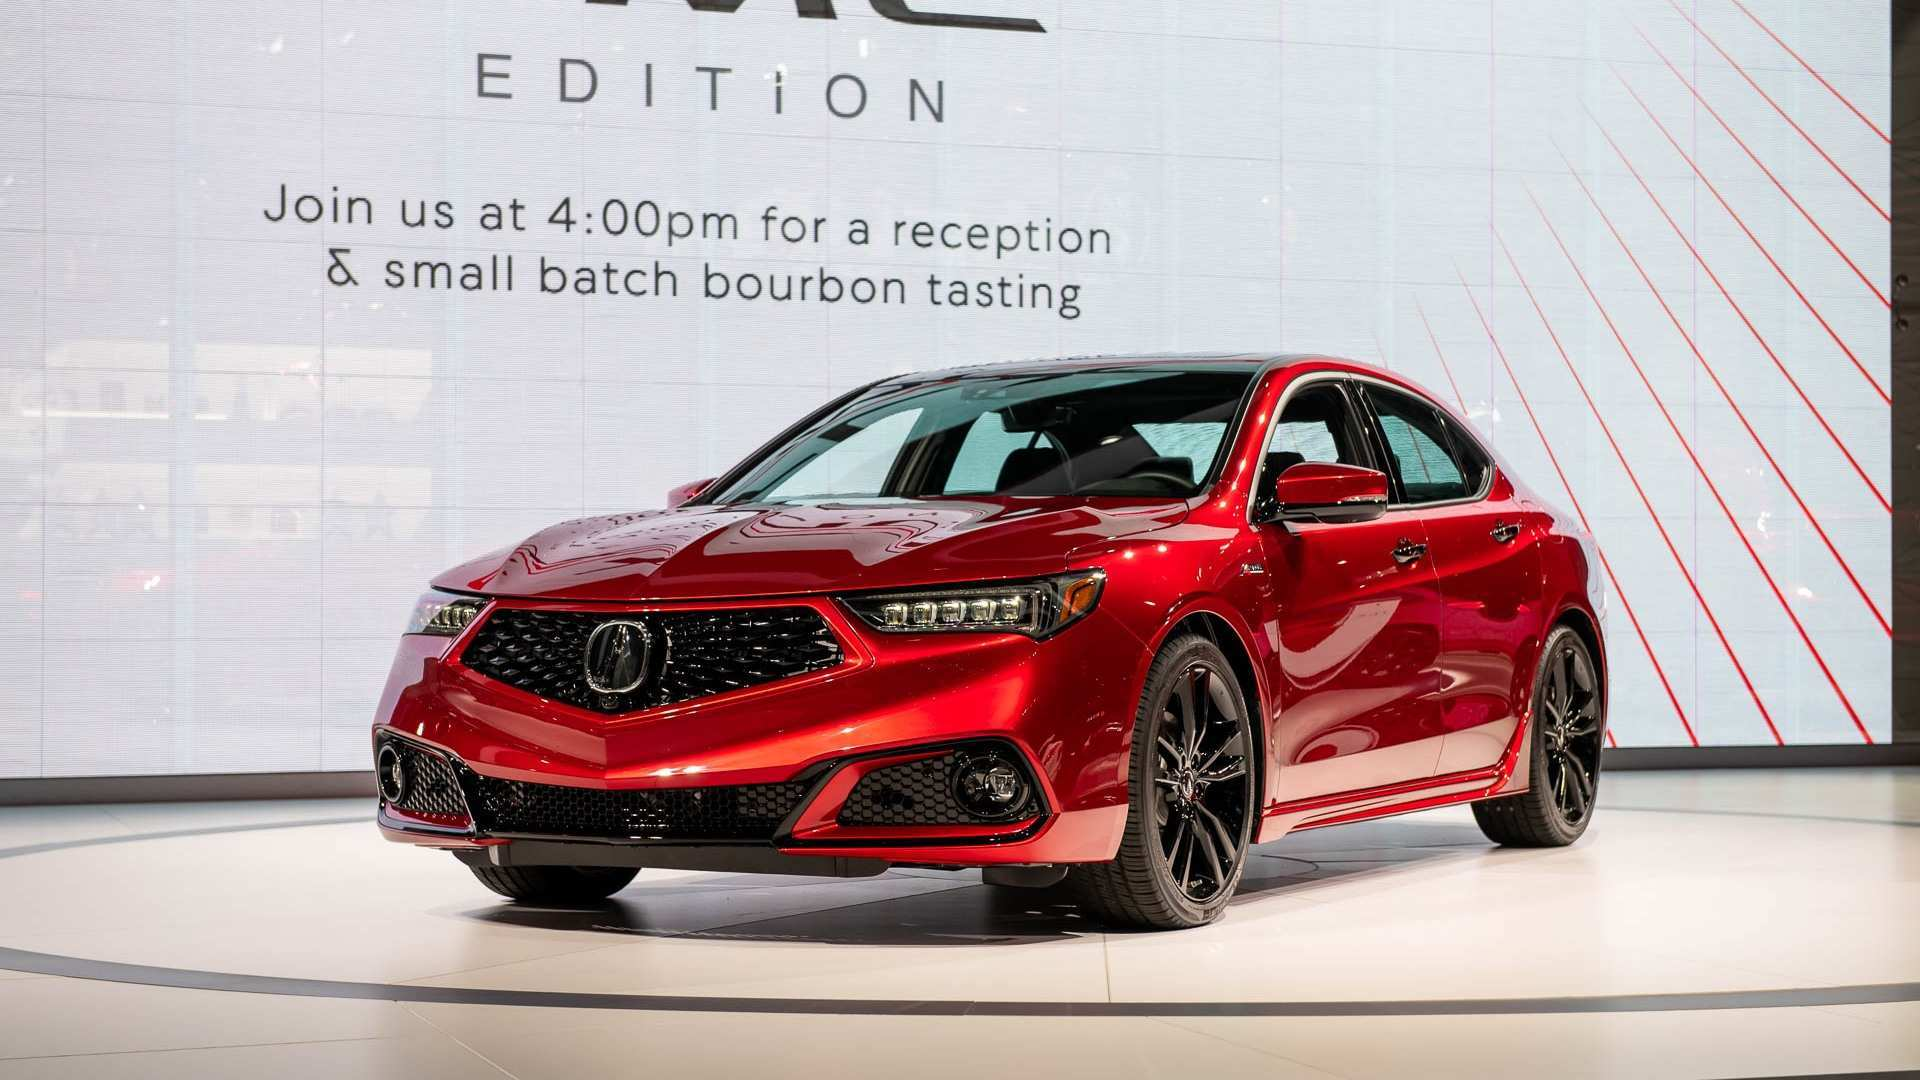 46 New 2020 Acura Tlx Pmc Edition Specs Review with 2020 Acura Tlx Pmc Edition Specs